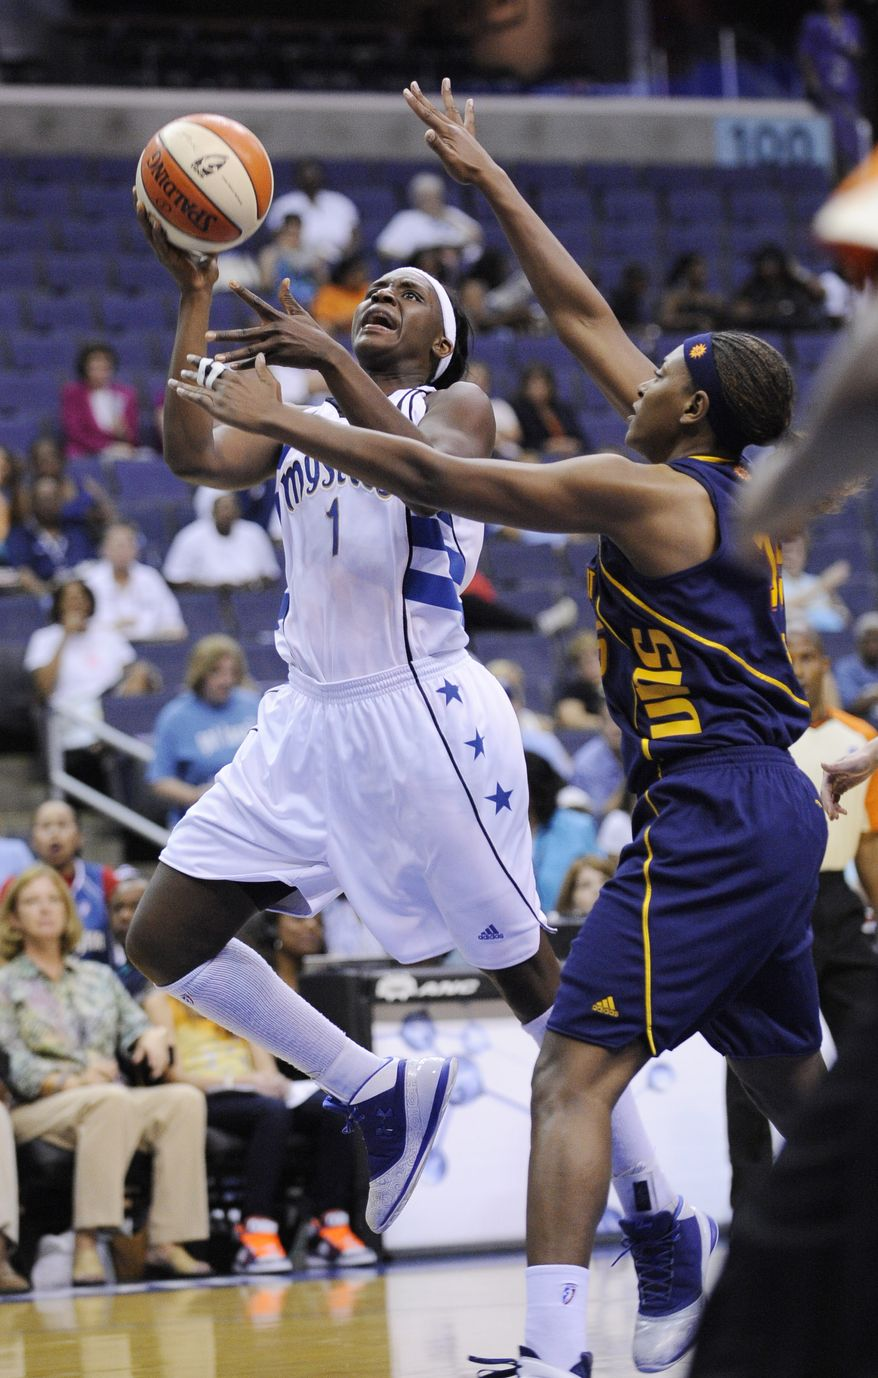 Washington Mystics' Crystal Langhorne (1) goes to the basket against Connecticut Sun's Asjha Jones, right, during the first half of an WNBA basketball game in 2010. Langhorne led all scorers in Thursday morning's exhibition game against the Chicago Sky with 15 points and nine rebounds. The Mystics won 66-55.